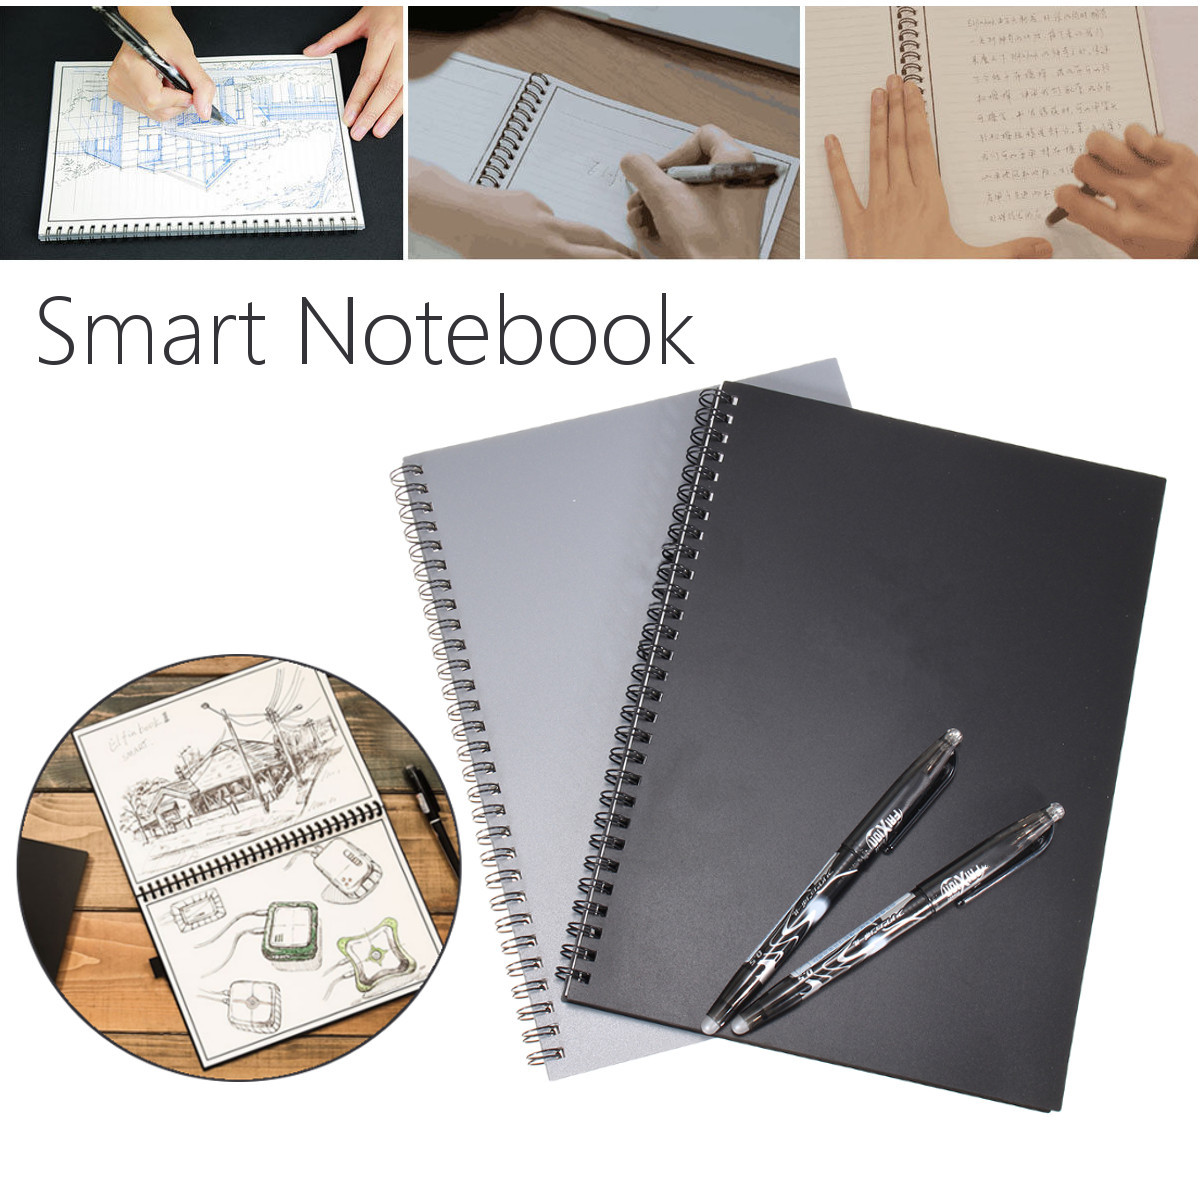 Elfinbook Reusable Erasable Notebook Microwave Wave Cloud Flash Storage Notepad With Writing Pen